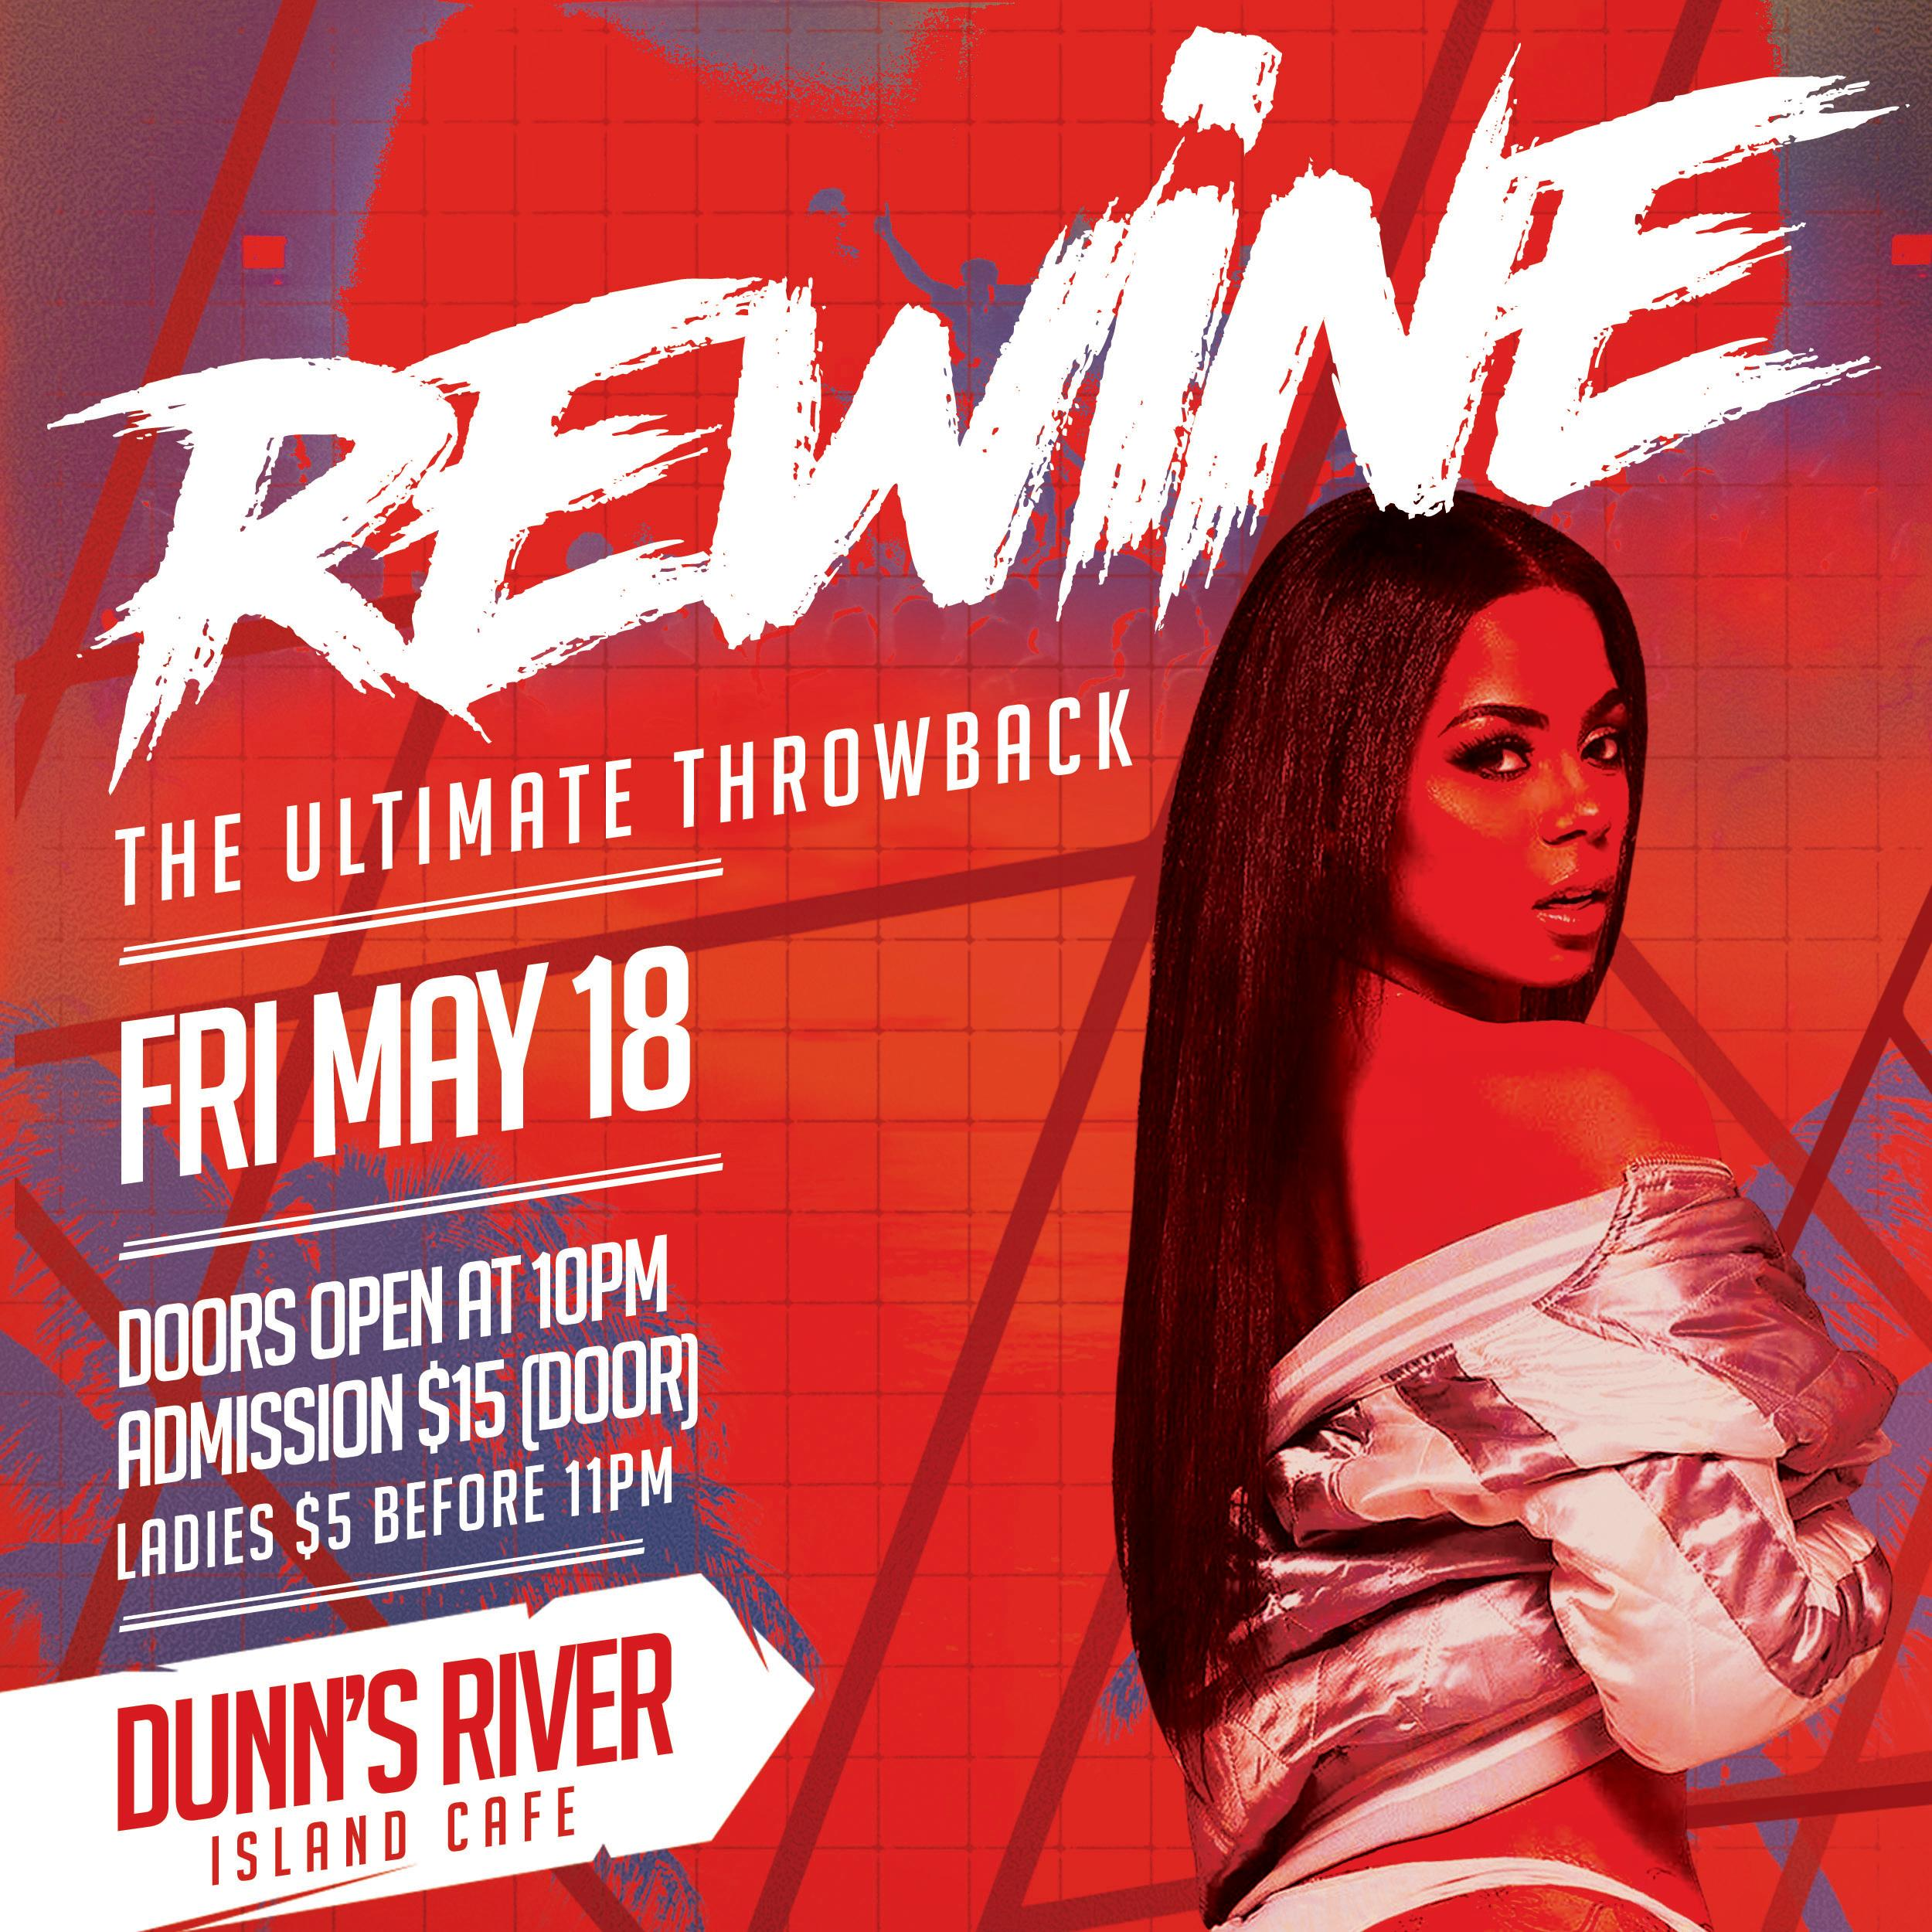 Rewine: The Ultimate Throwback (At Dunn's River Island Cafe)